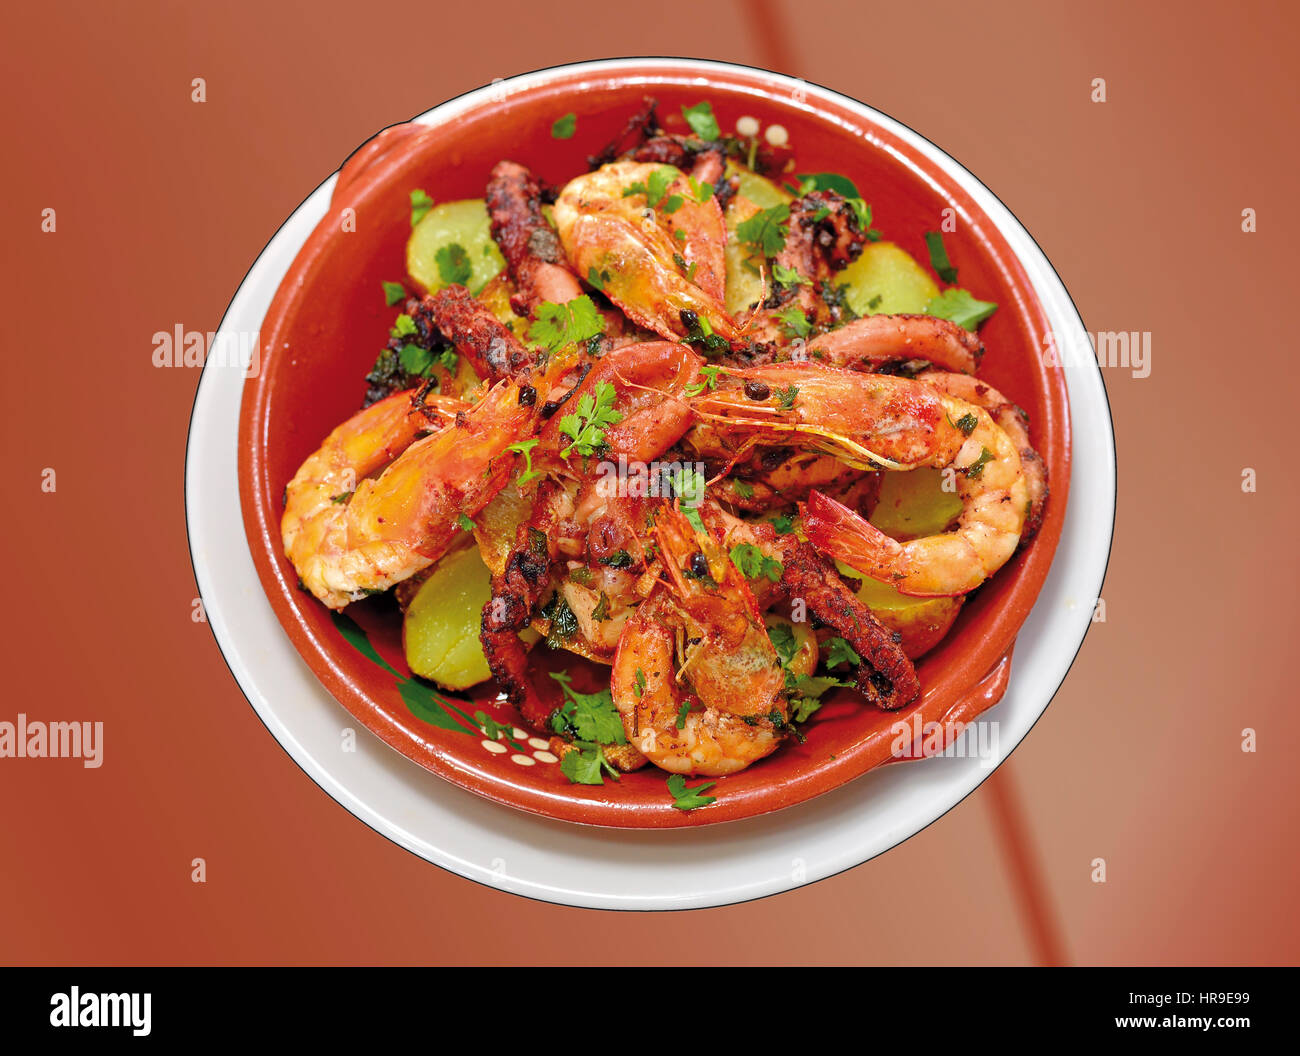 Close-up of a octopus and shrimp dish in a terracotta plate - Stock Image